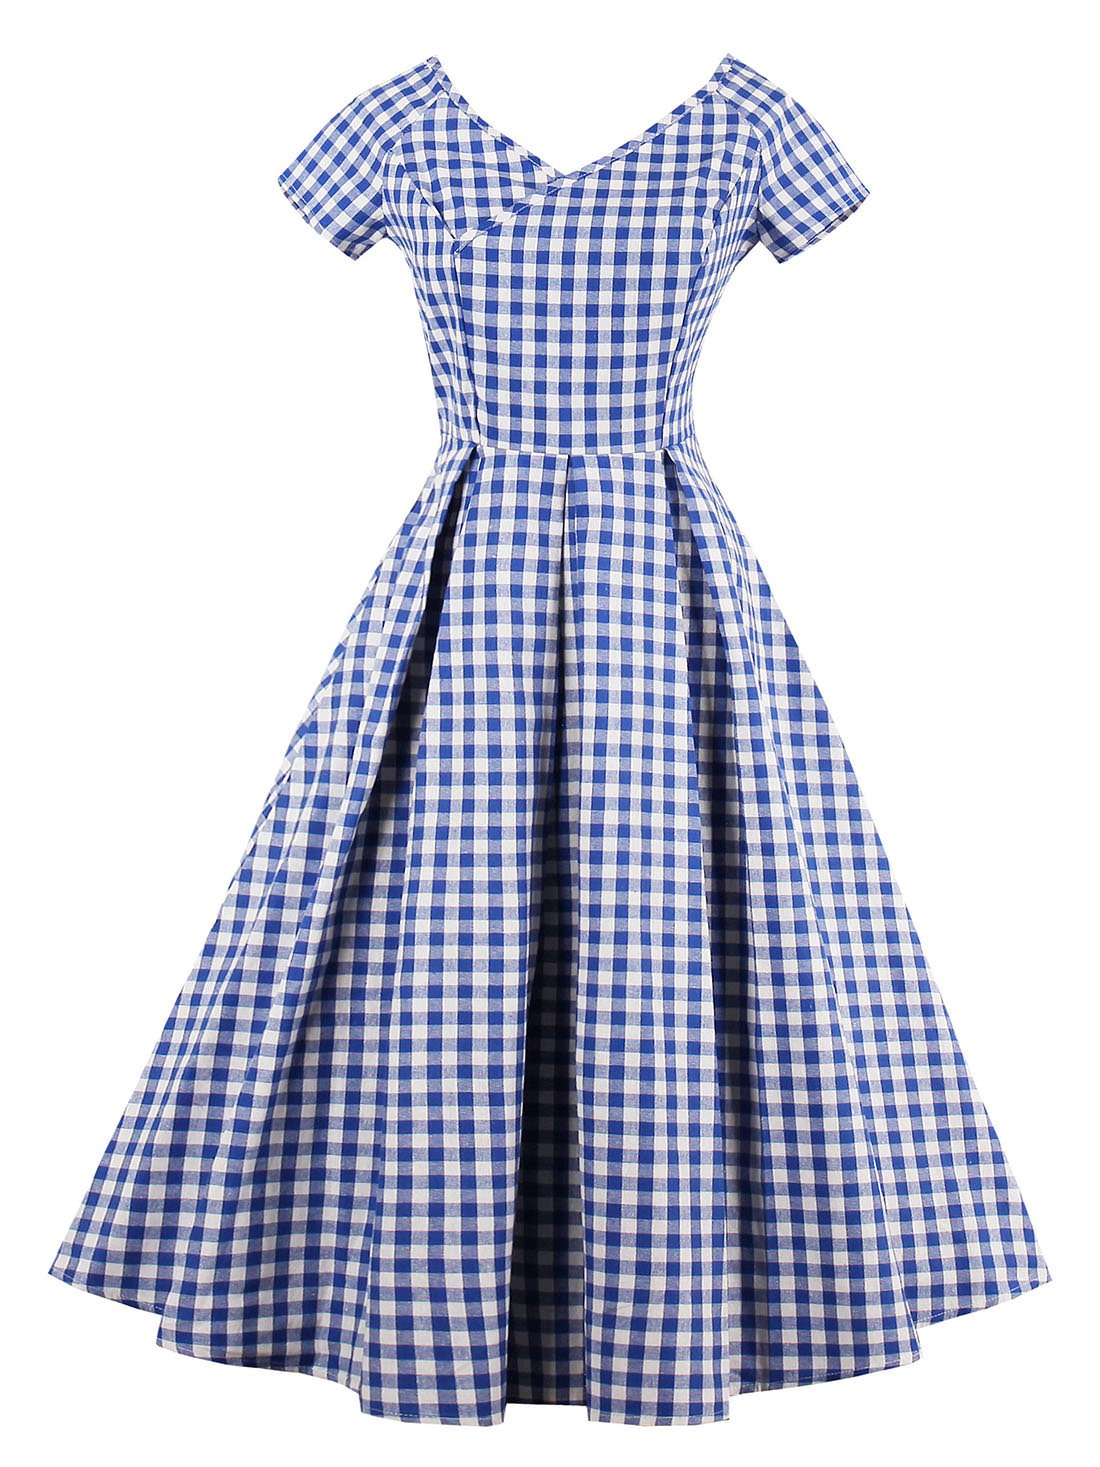 Available at Amazon: VINFA Women's Vintage V Neck Gingham Plaid A Line Swing Party Dress